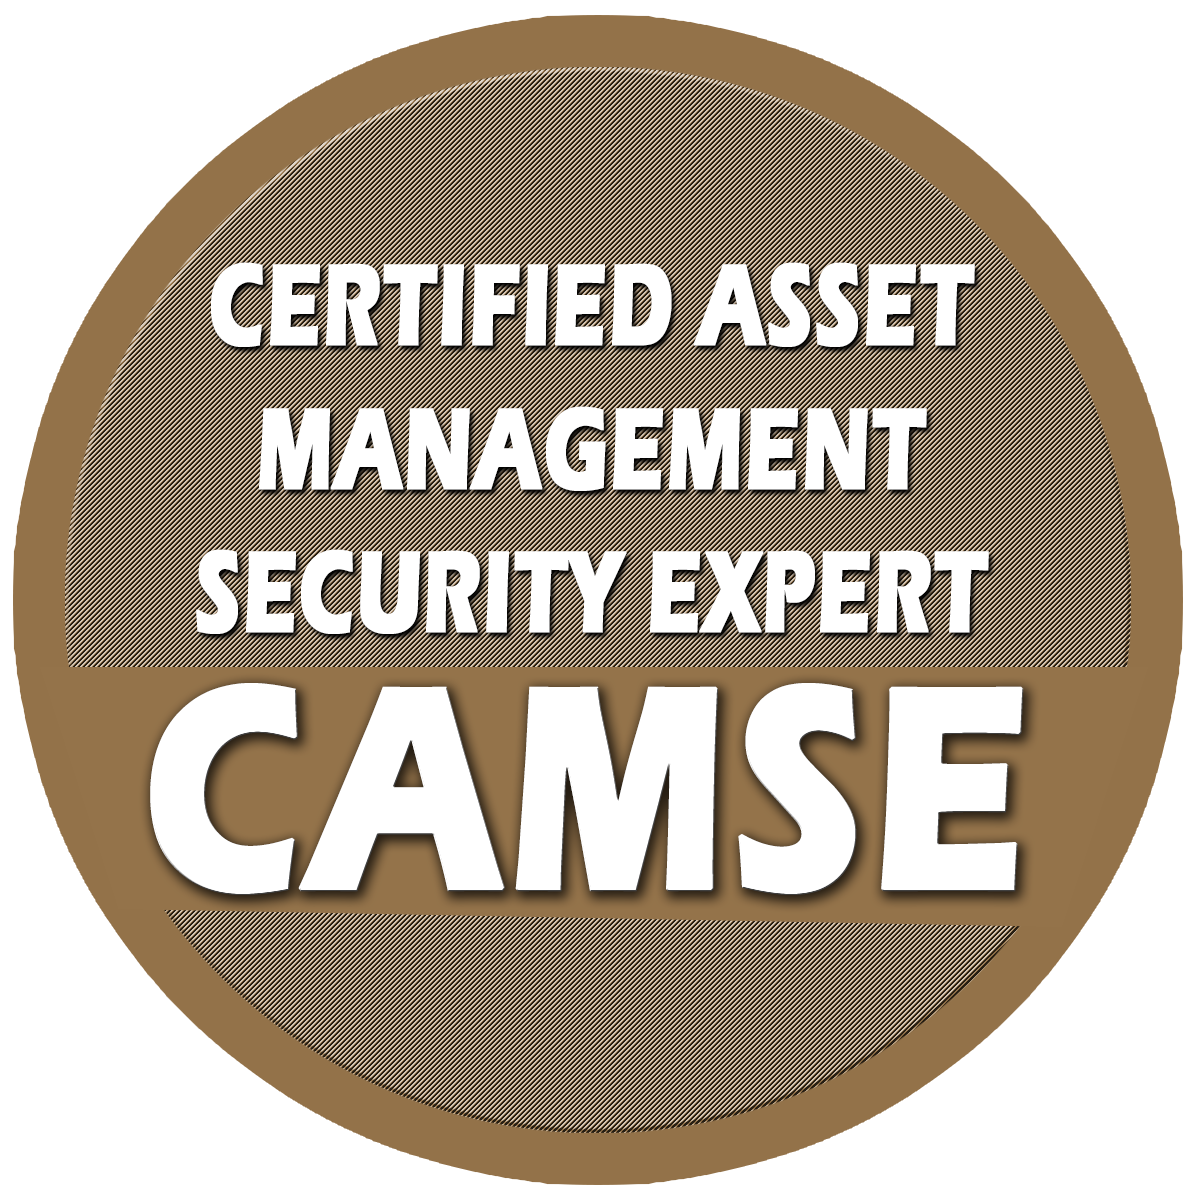 CERTIFIED ASSET MANAGEMENTLIAISON TO SECURITY